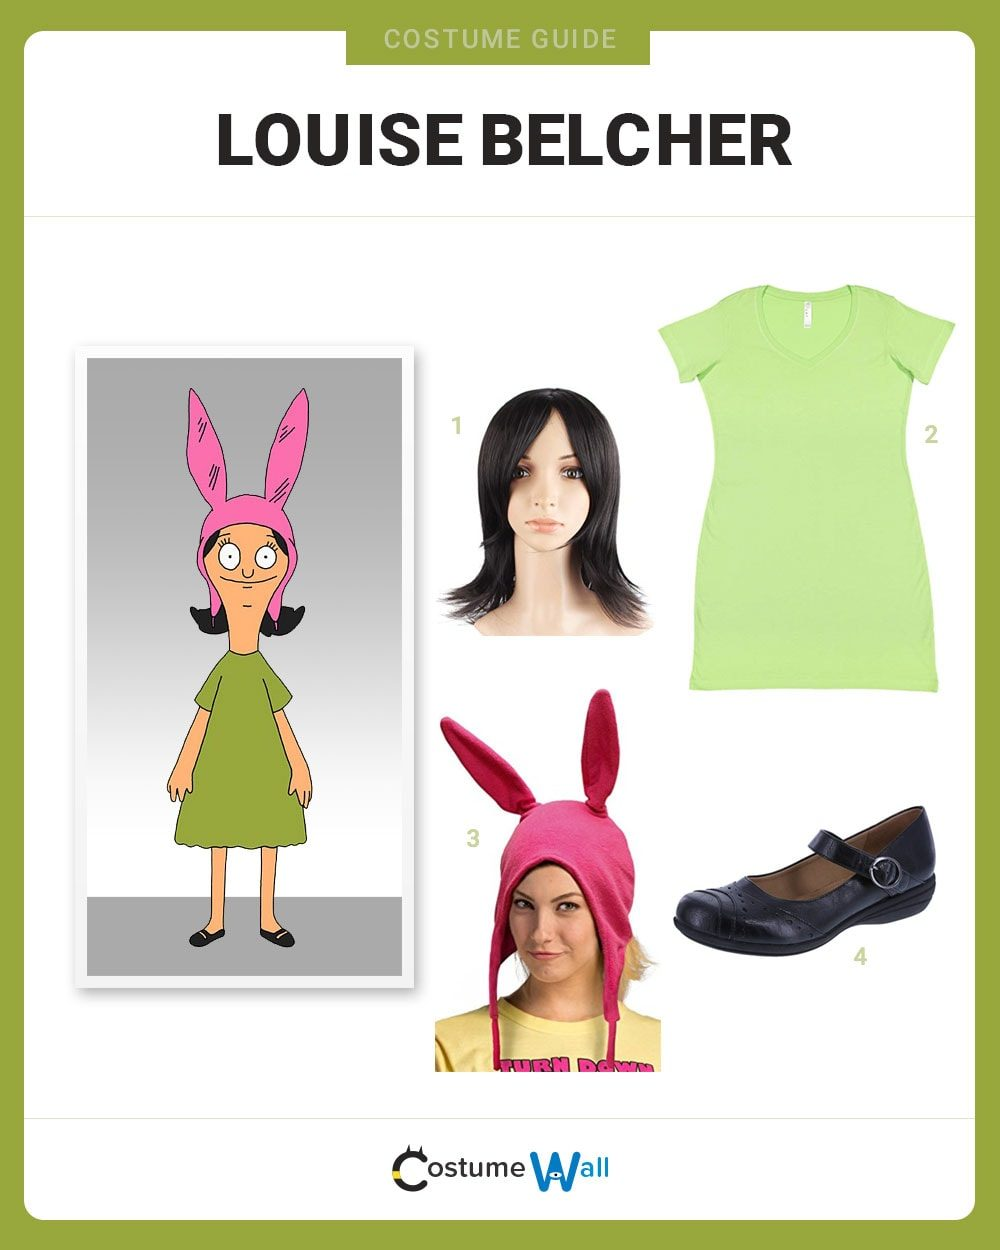 Louise Belcher Costume Guide